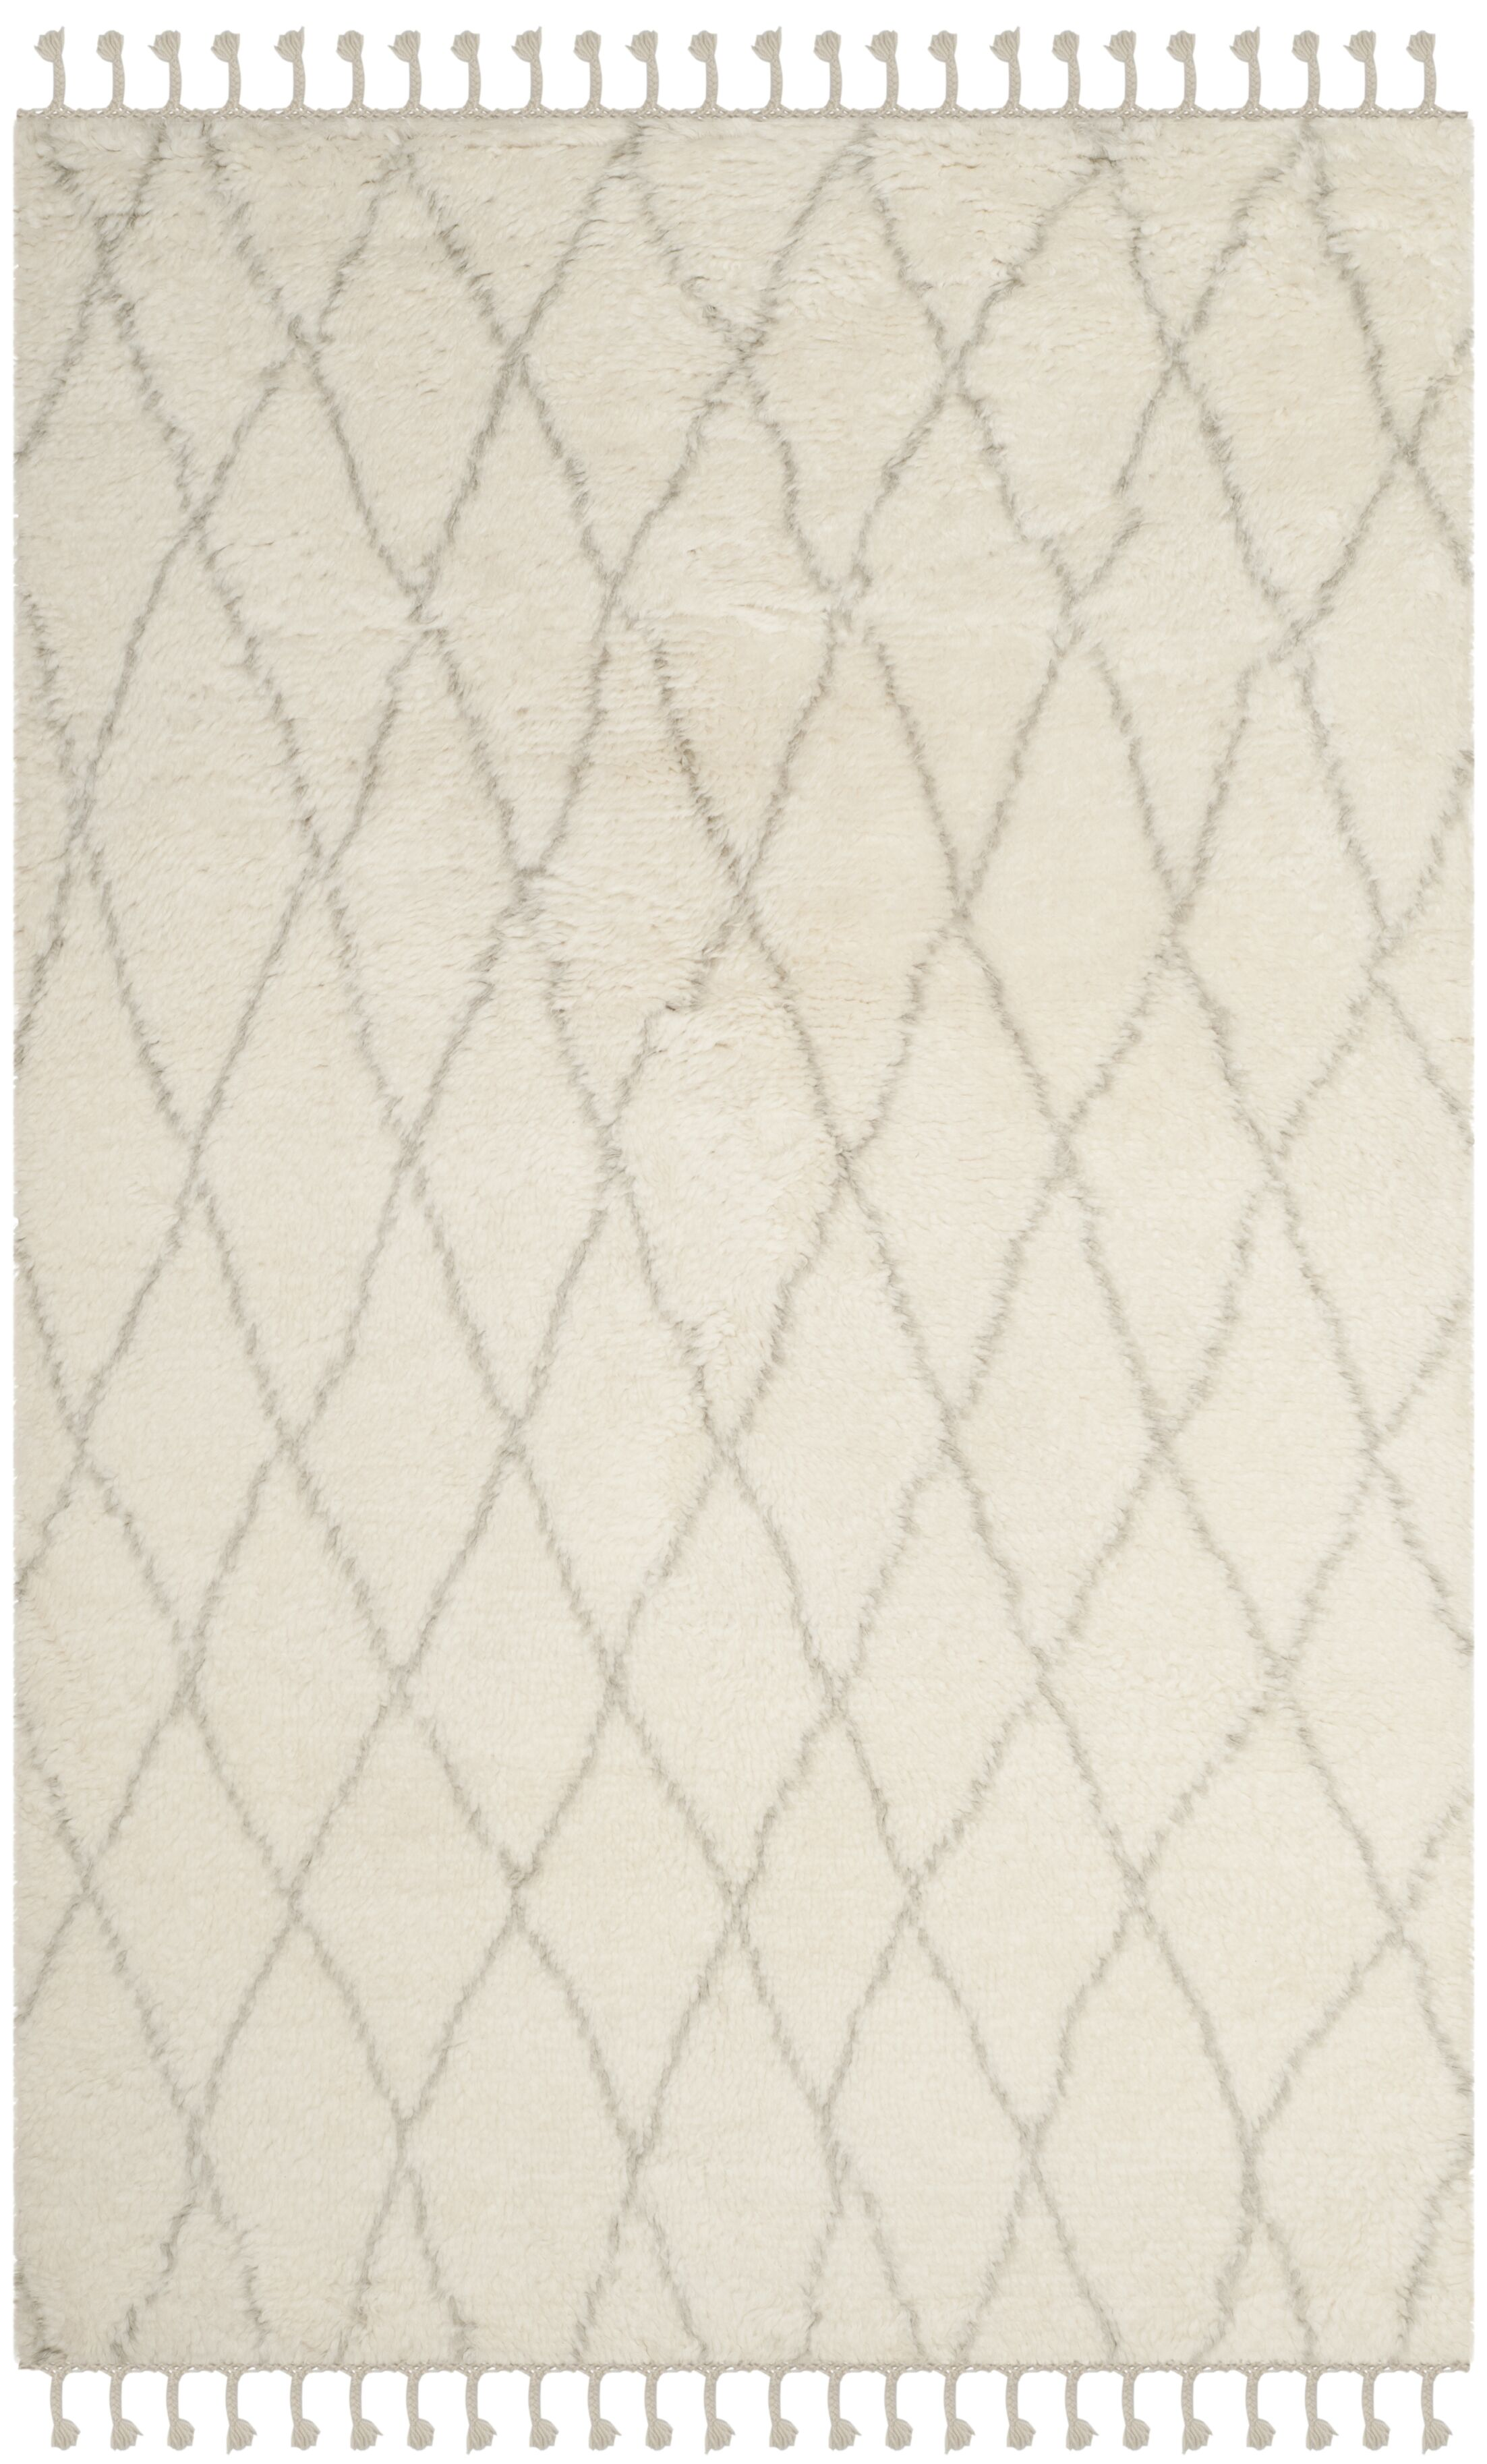 Cosima Hand-Knotted Ivory/Gray Area Rug Rug Size: Rectangle 8' x 10'